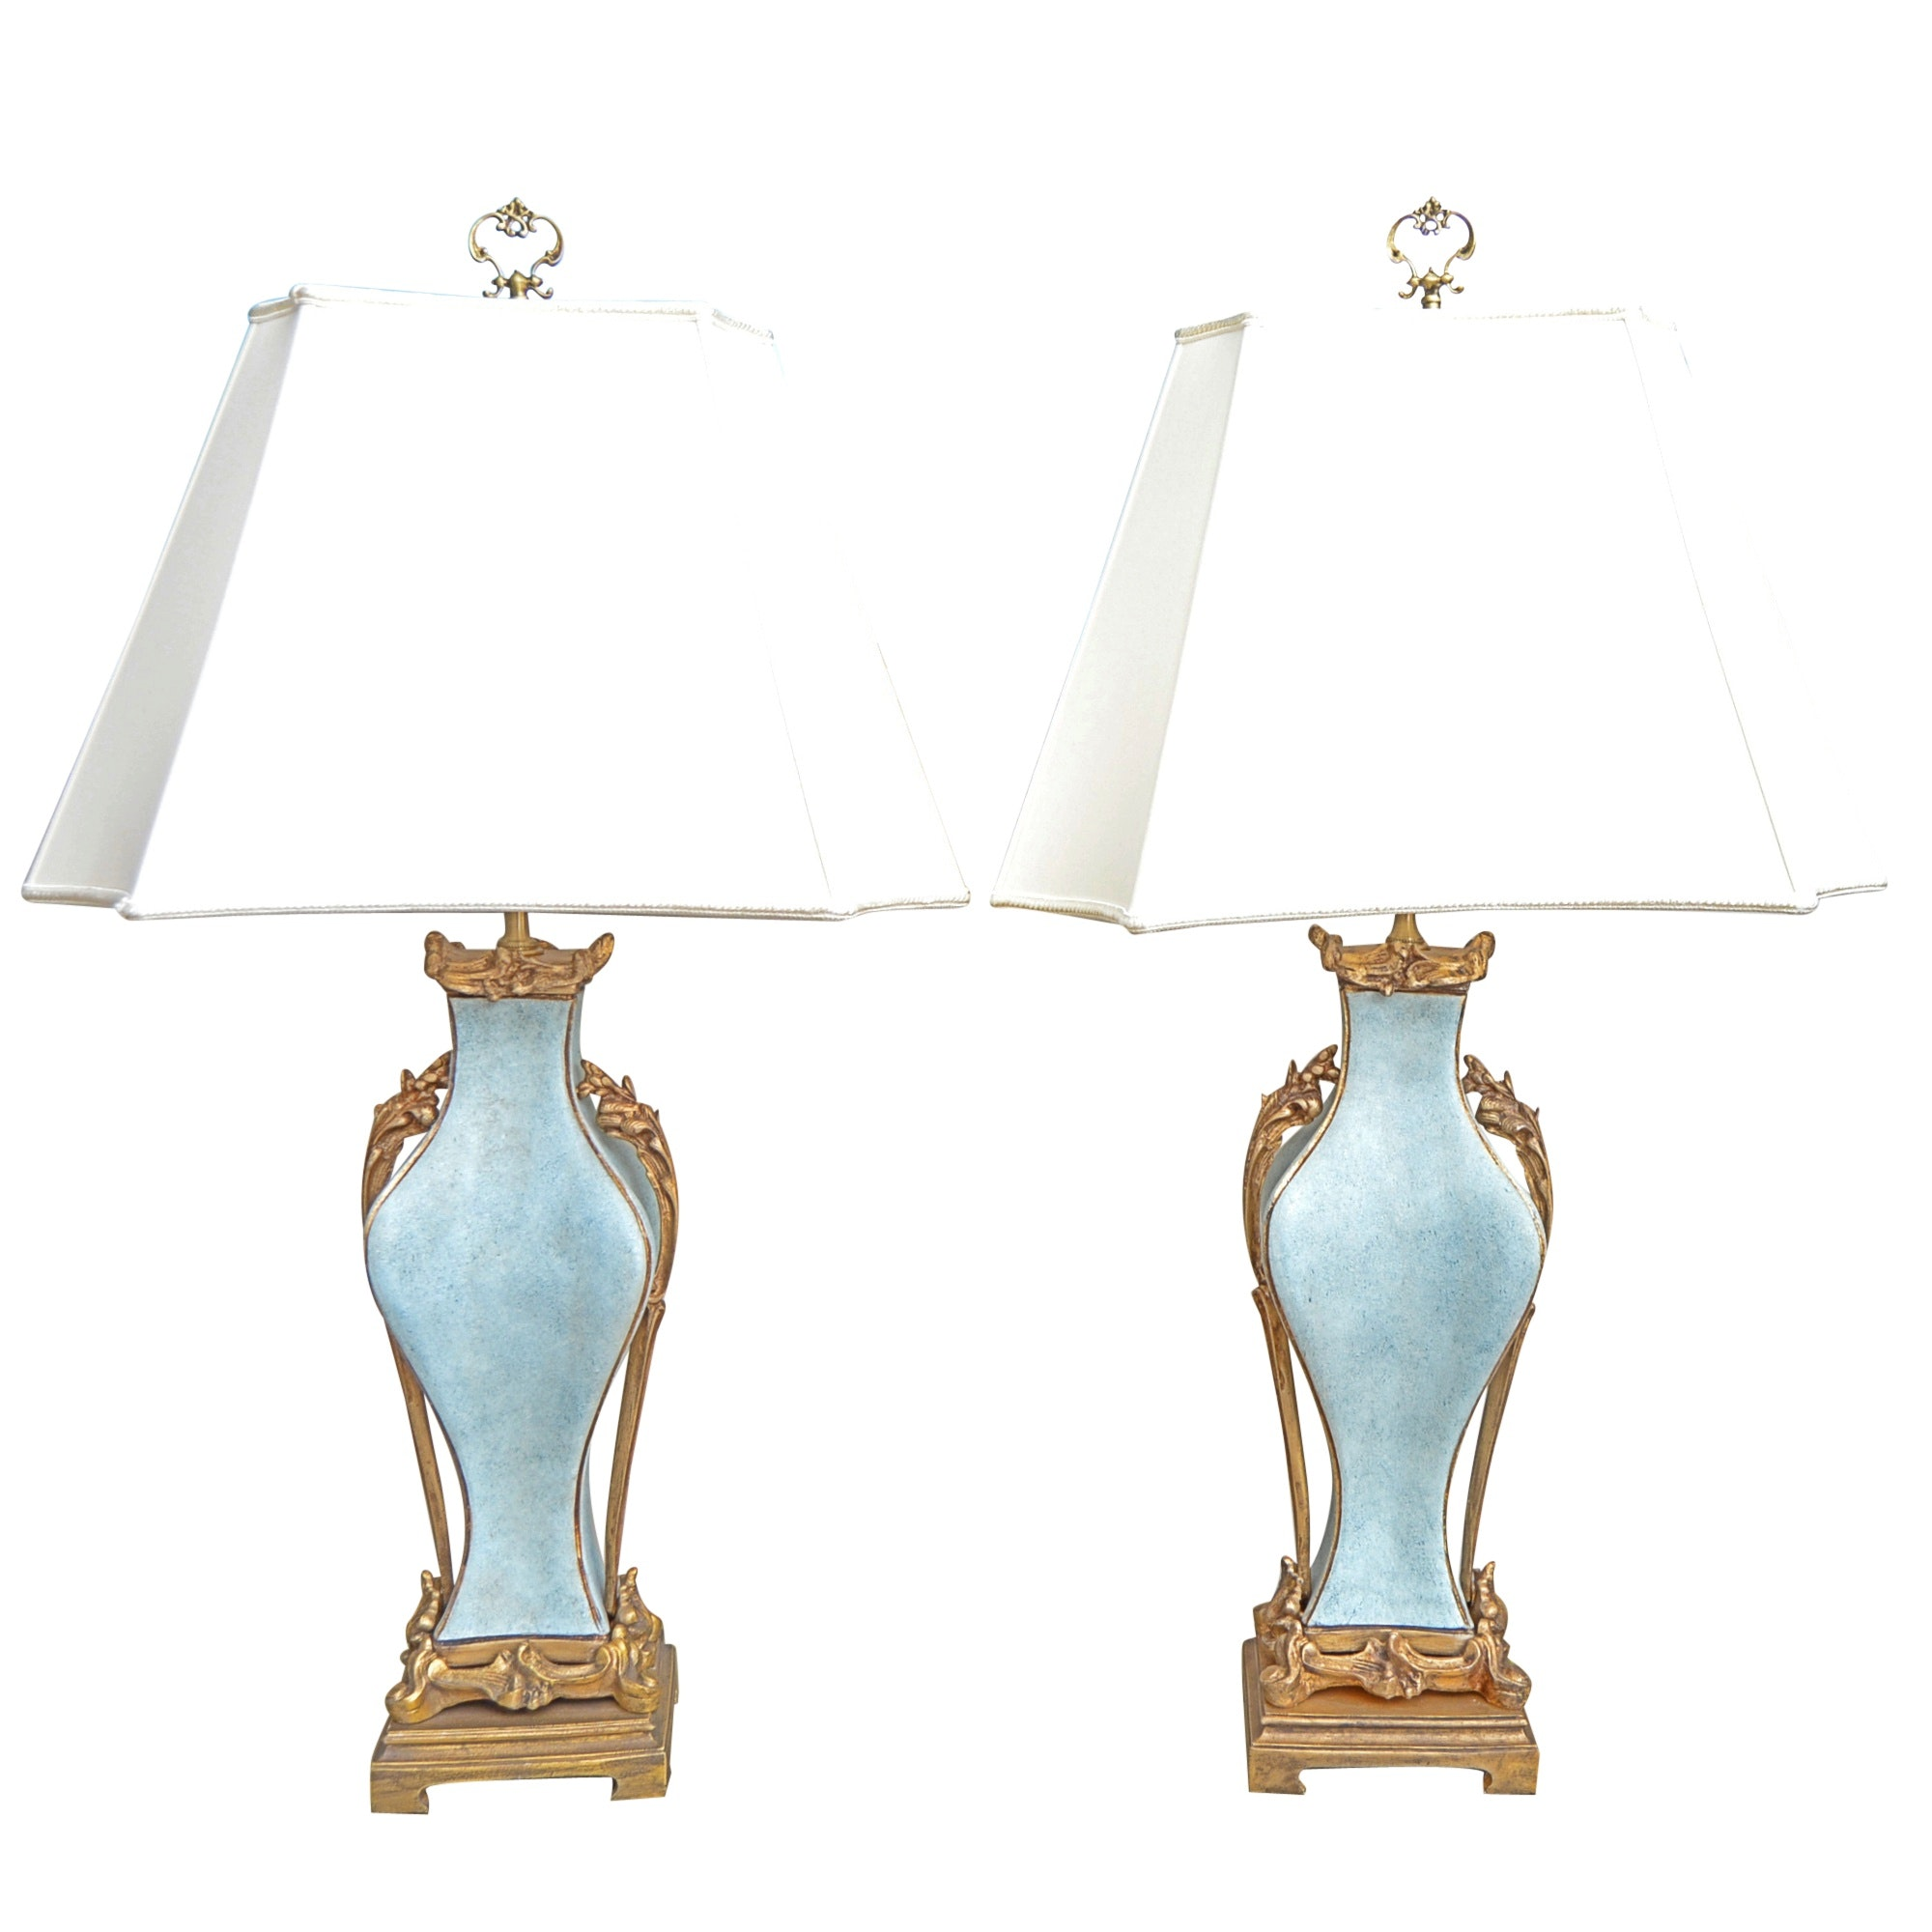 Sèvres Style Porcelain Table Lamps After Paul Milet